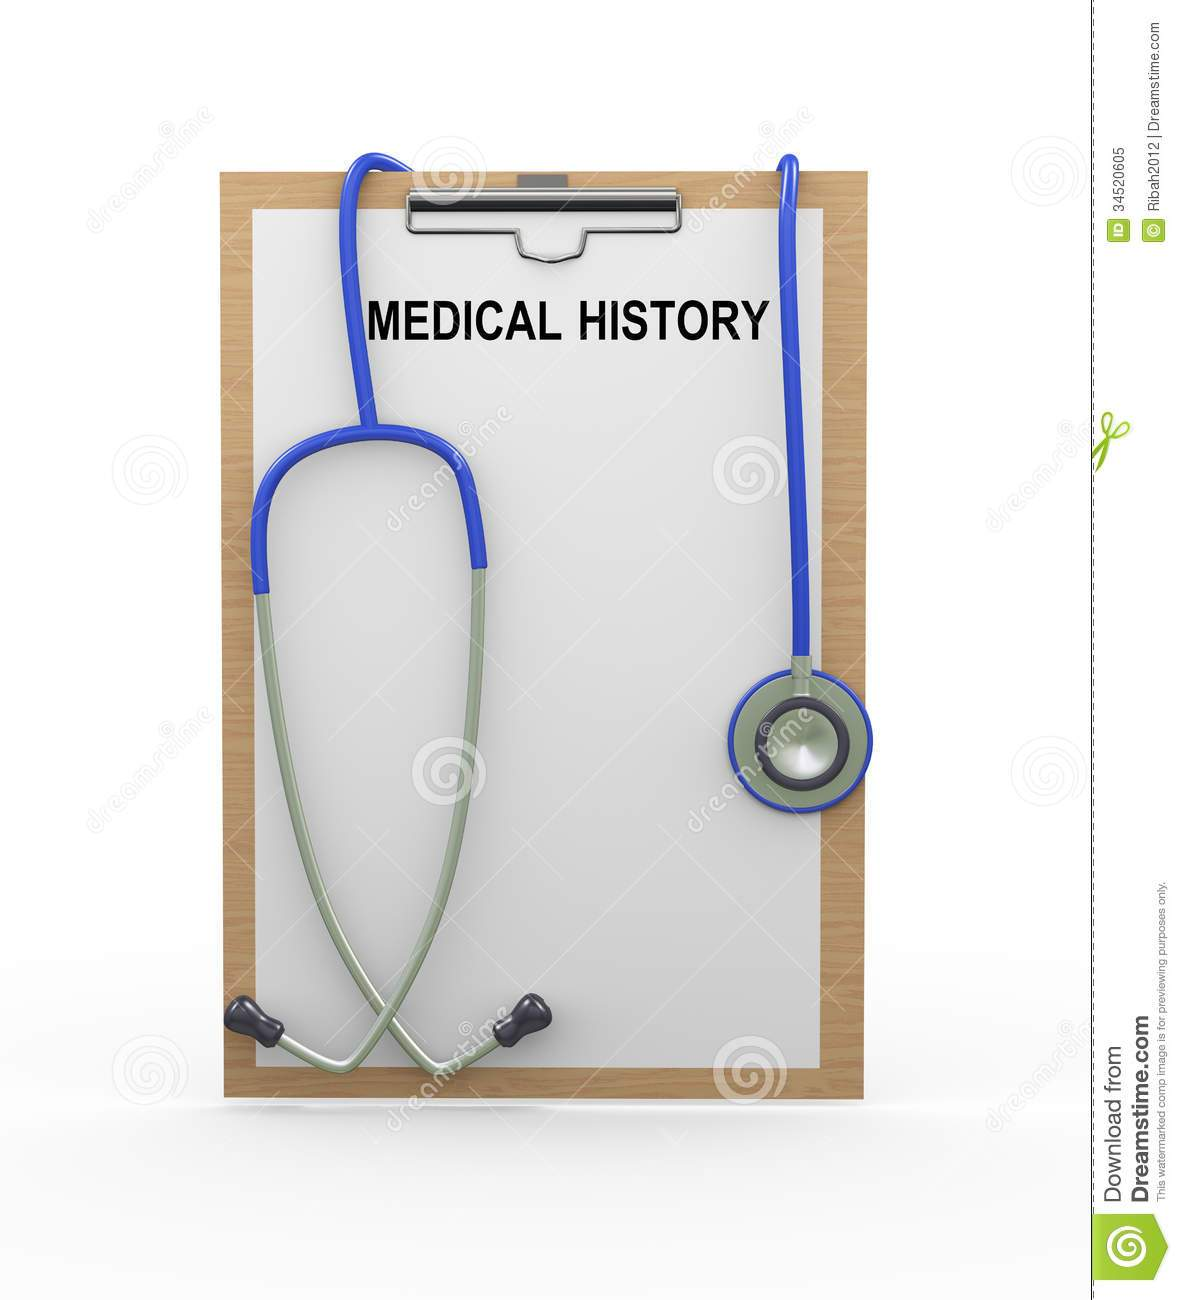 Medical history clipart 1 » Clipart Portal.